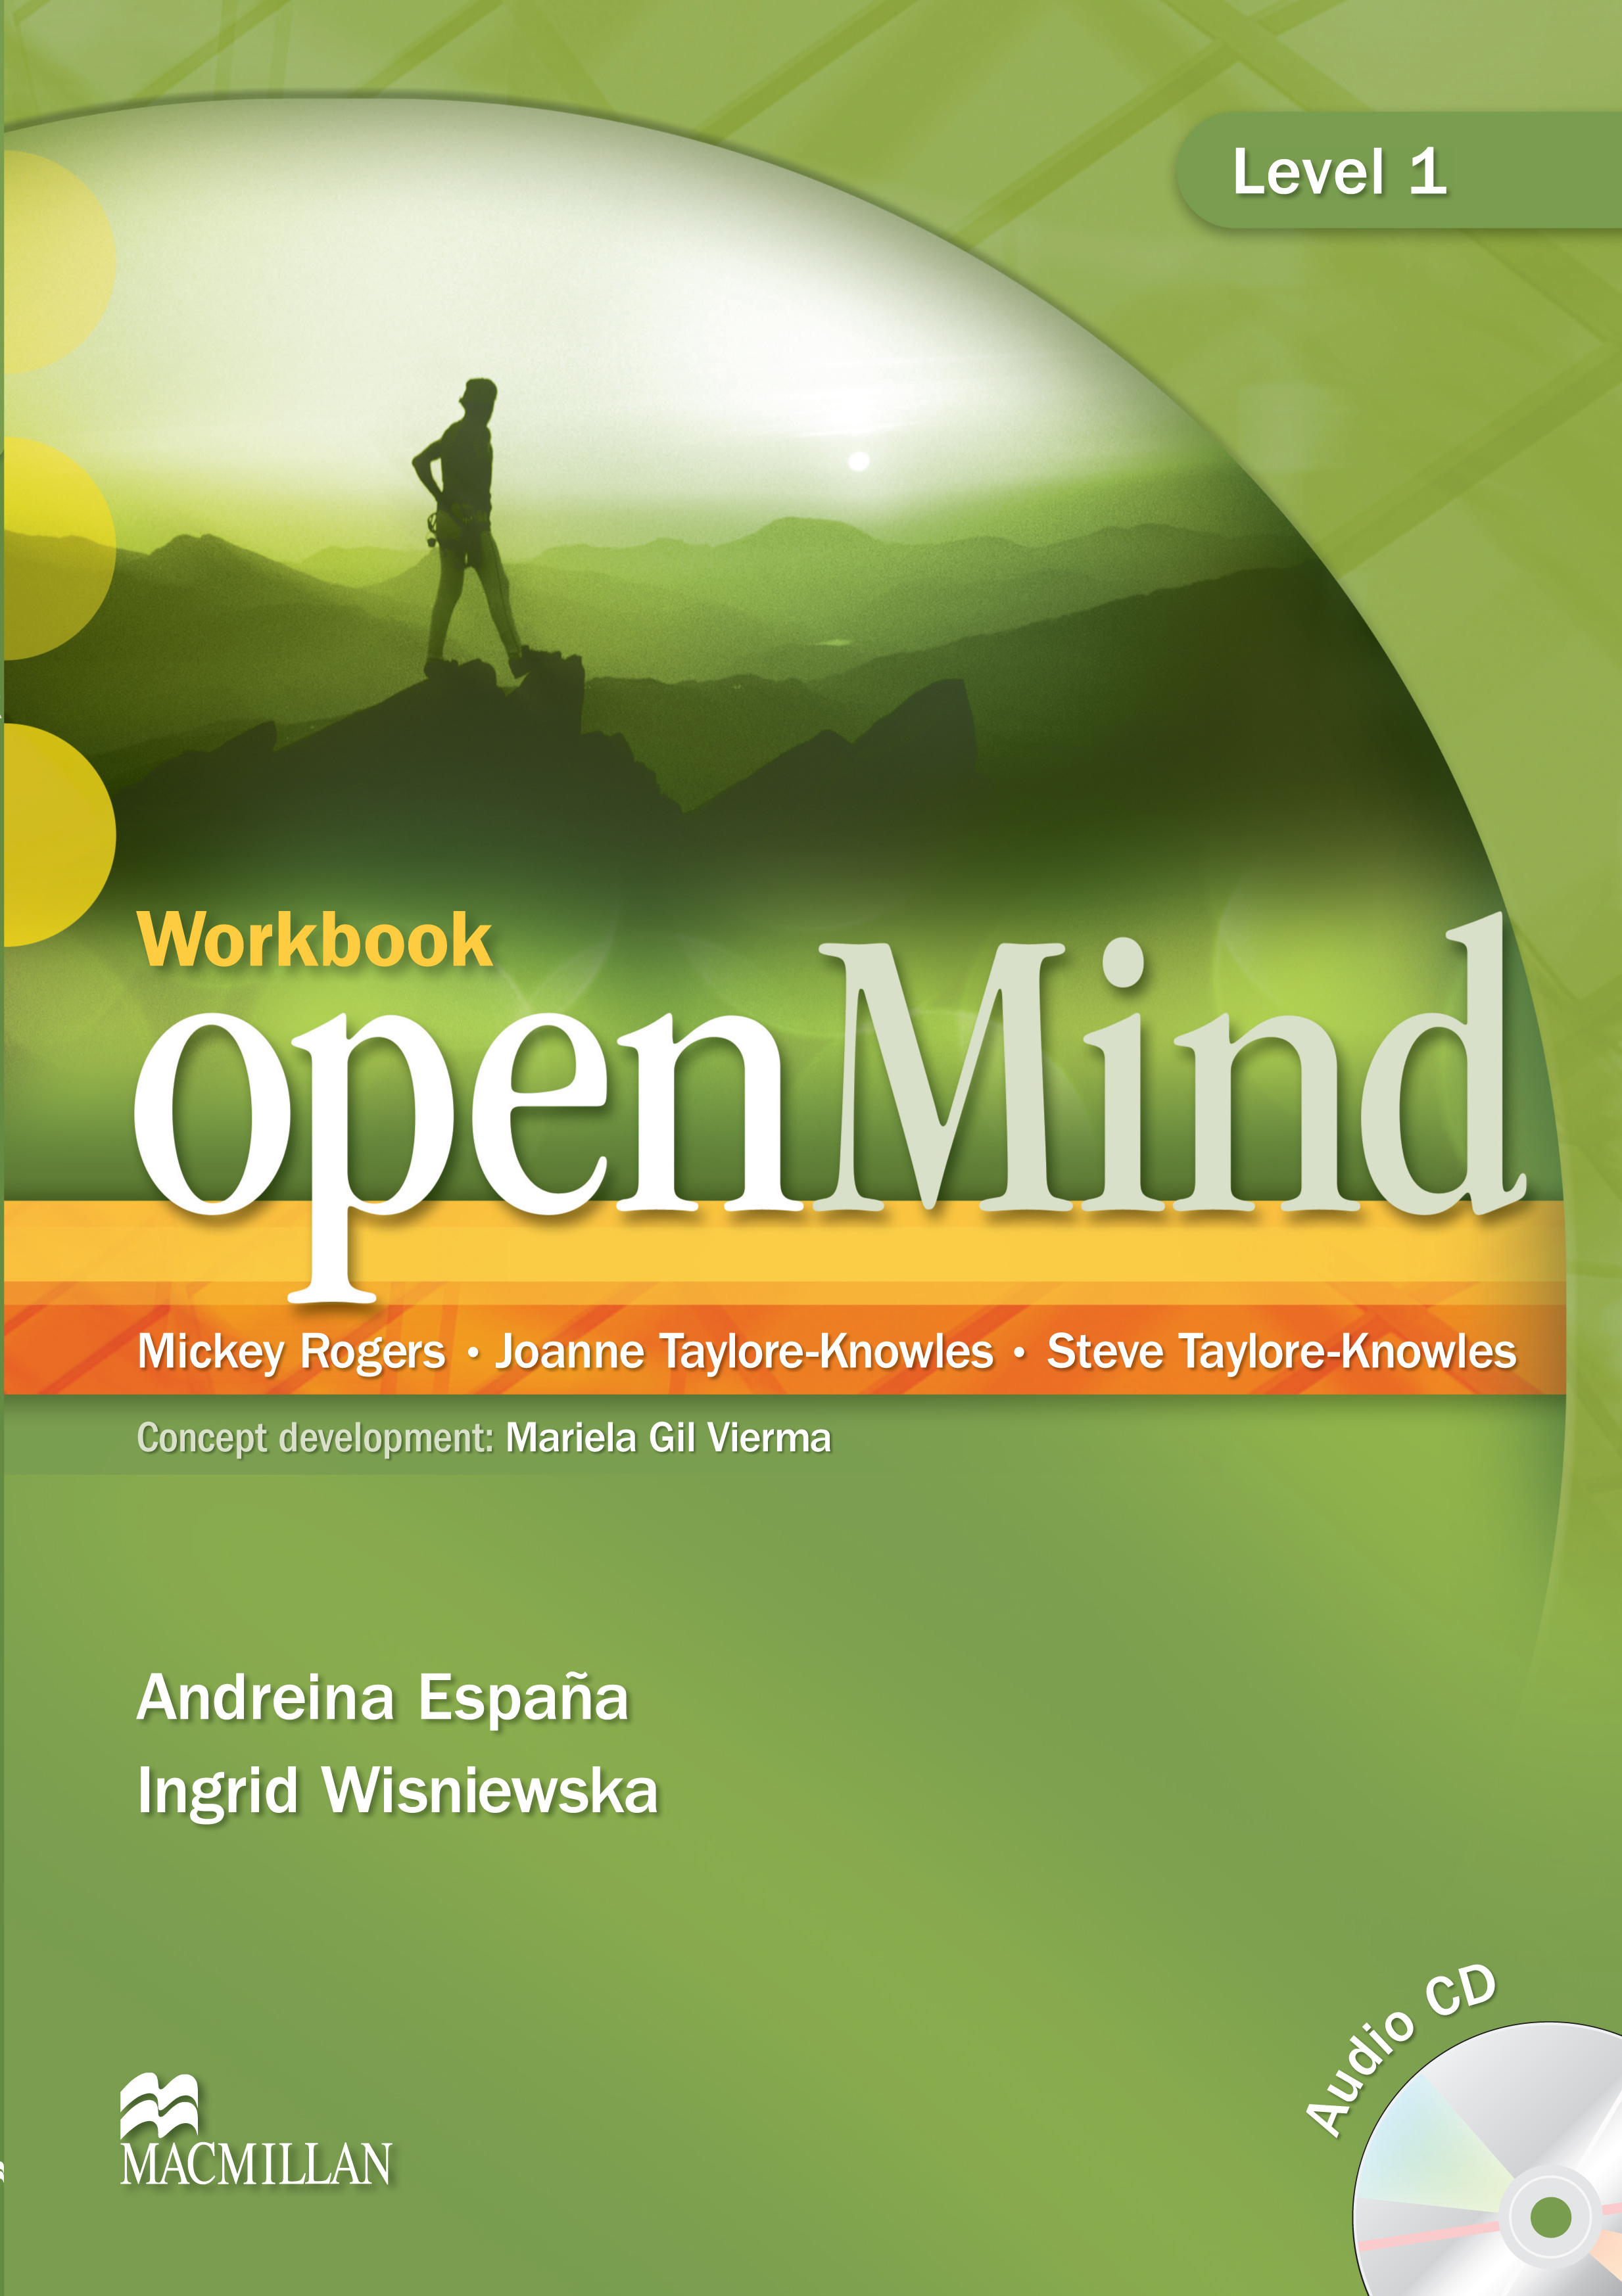 openMind 1 Workbook and CD